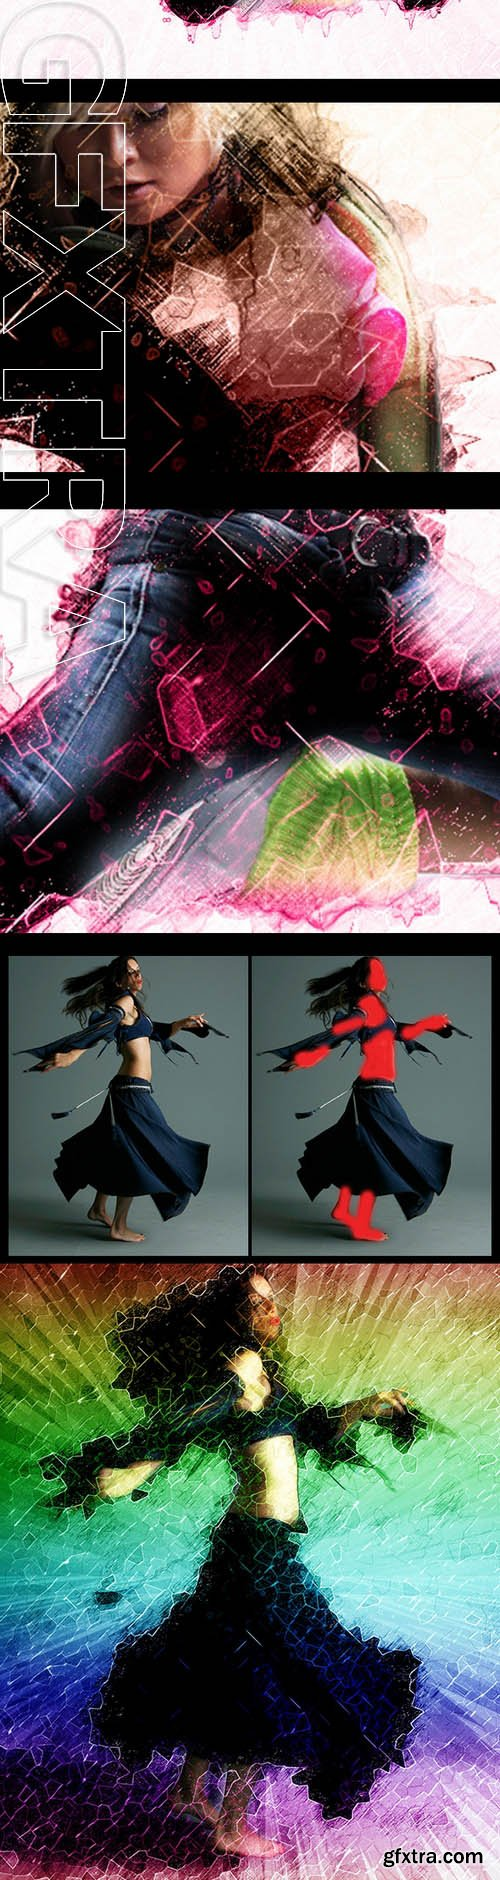 Abstract Modern Art - Photoshop Action - GraphicRiver 10132536